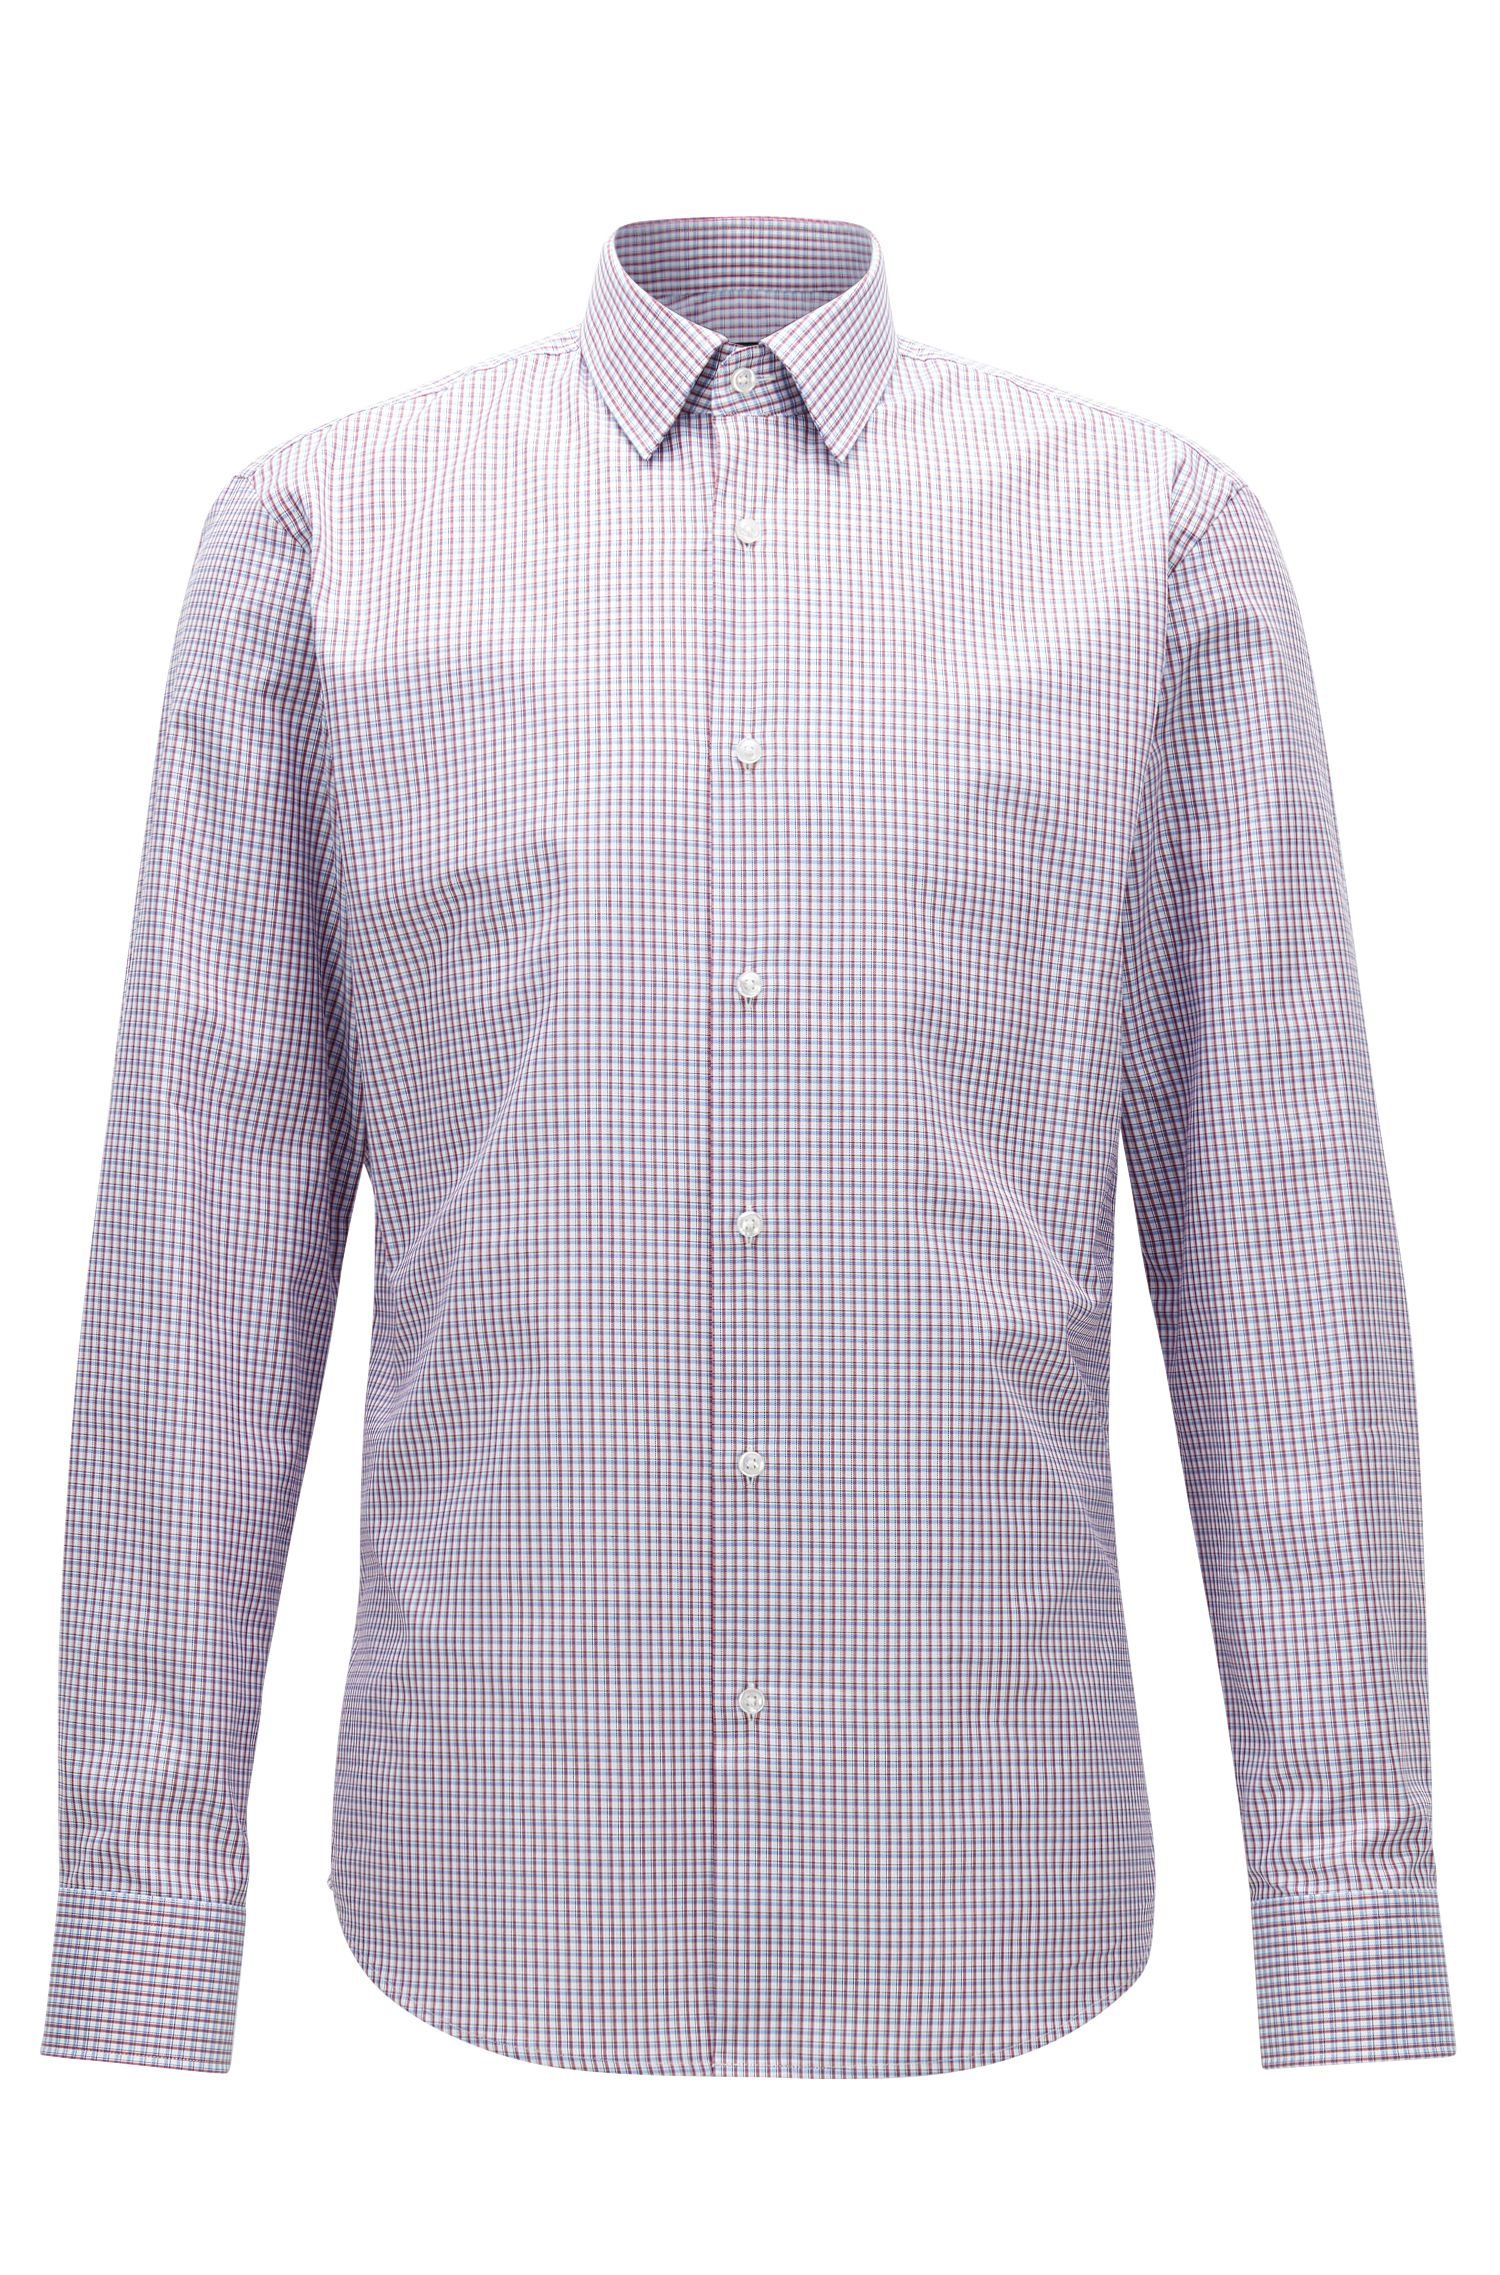 Check Cotton Dress Shirt, Regular Fit | Enzo